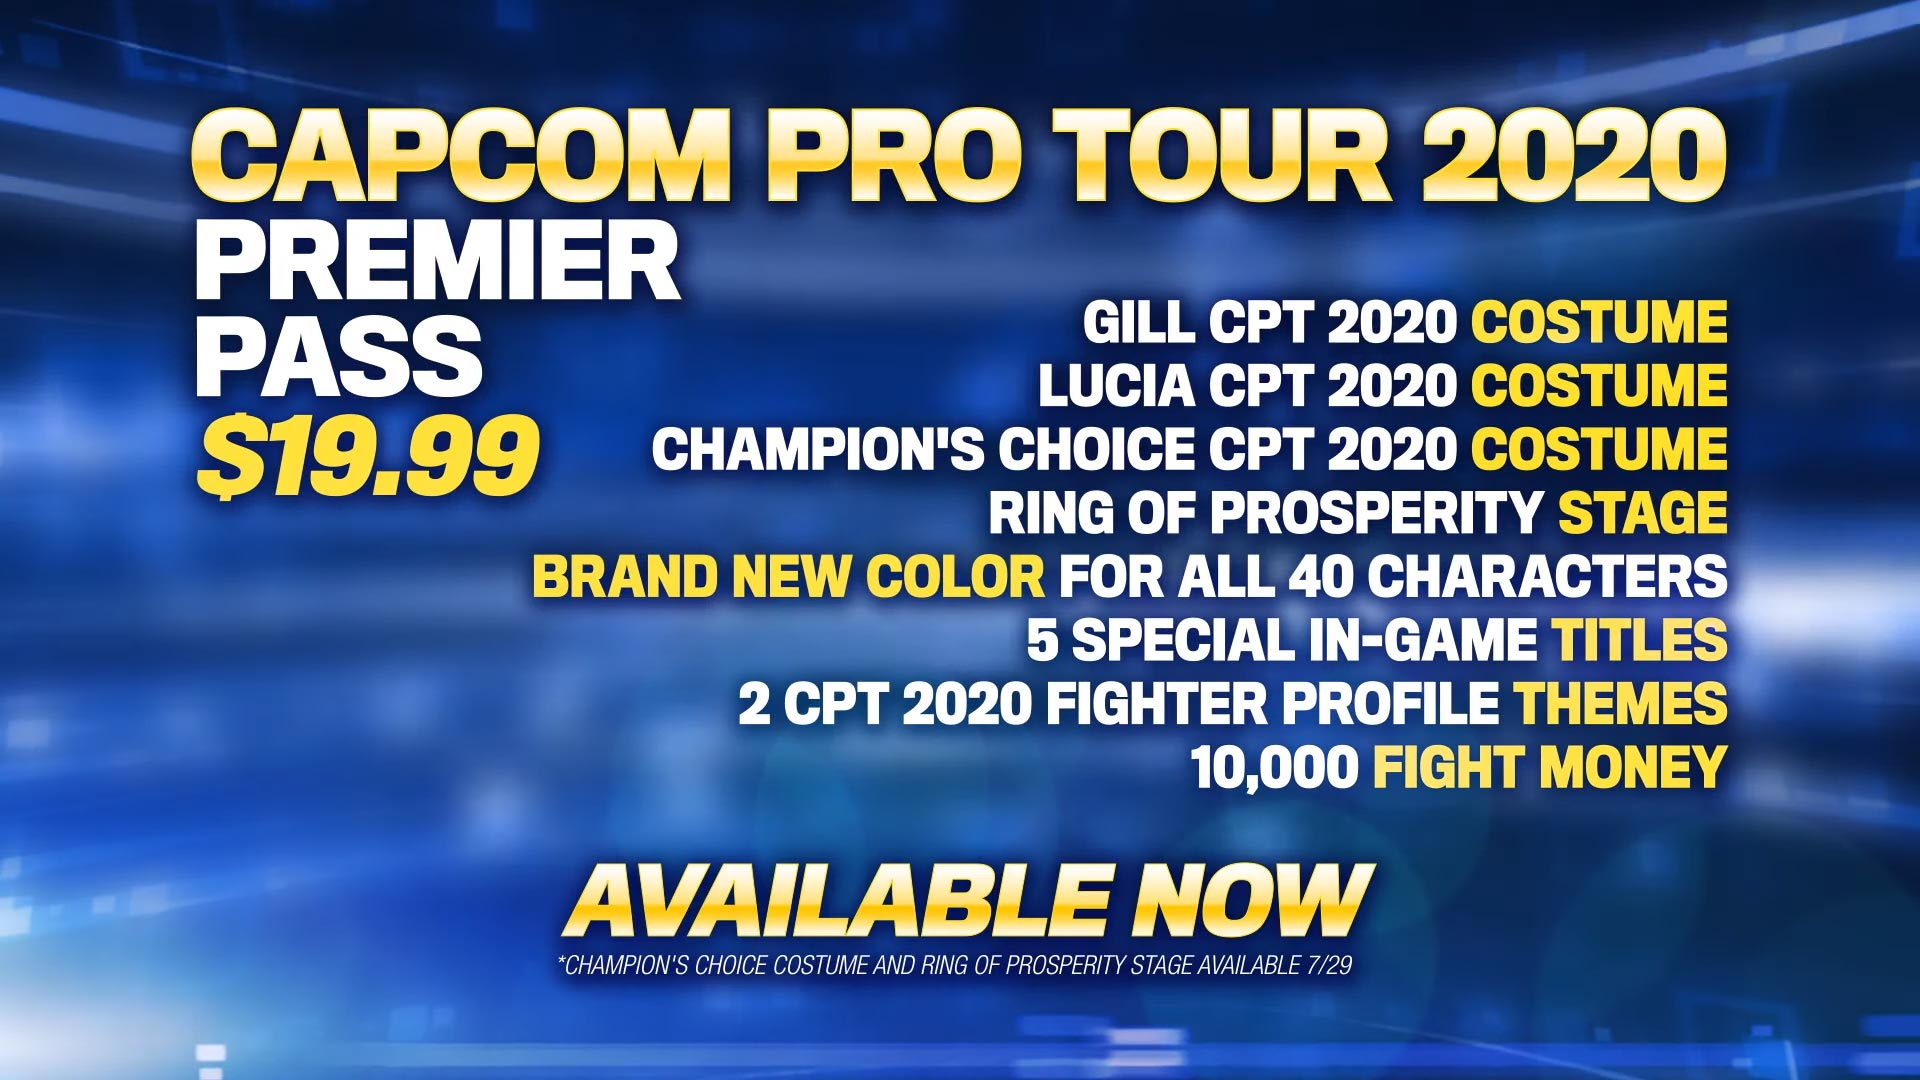 Street Fighter 5: Champion Edition 2020 Capcom Pro Tour DLC 5 out of 5 image gallery